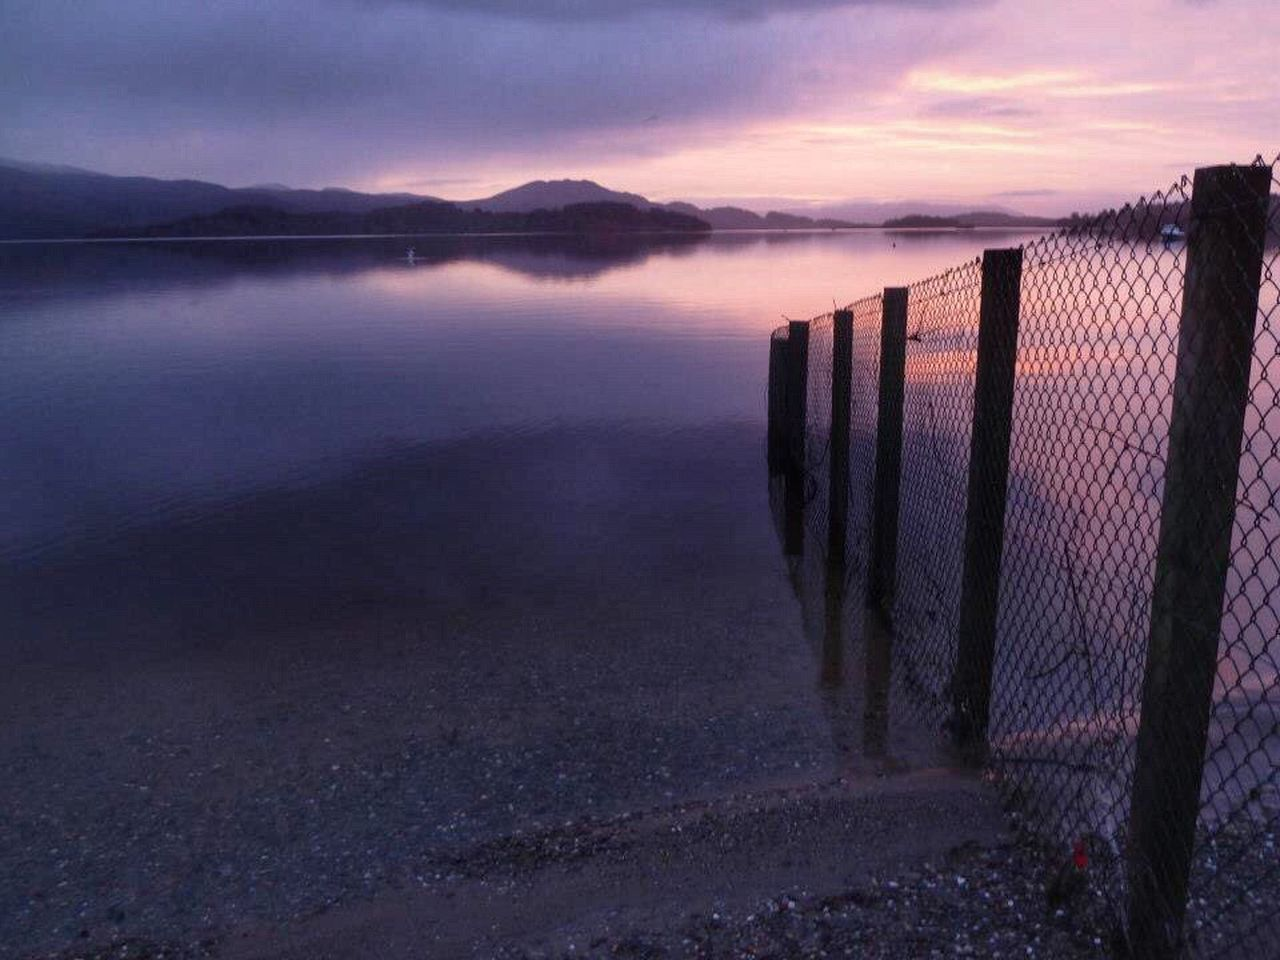 Enjoy The New Normal Tranquil Scene Nature Water Beauty In Nature Tranquility Lake Scenics Mountain Outdoors Surise Scotland Landscape LochLomond